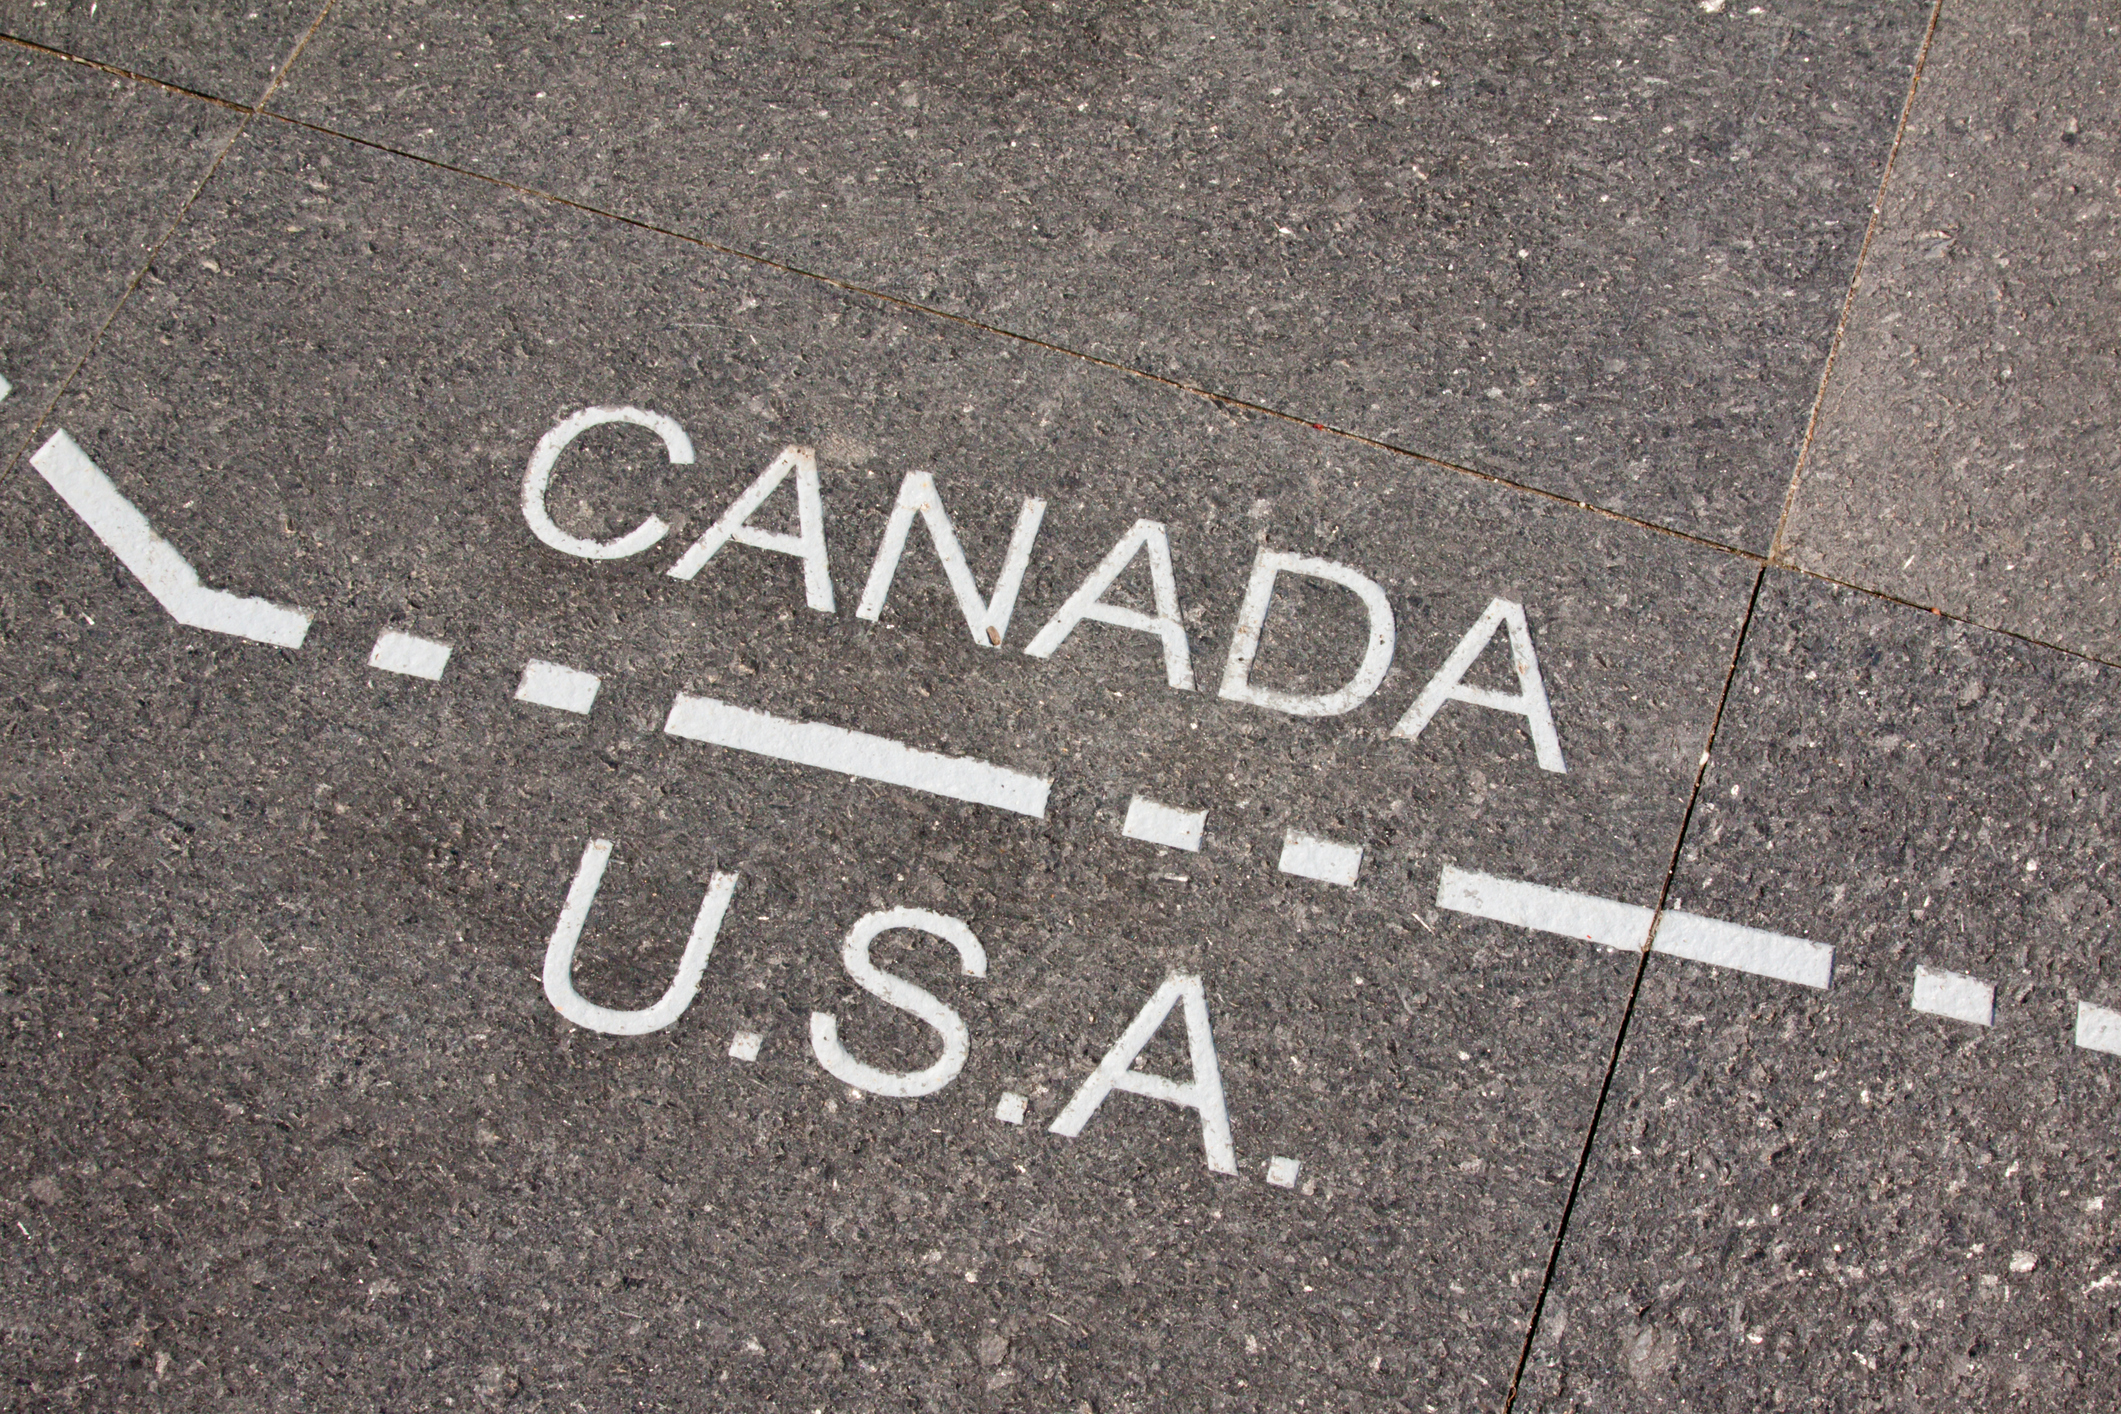 Represents the border between the United States and Canada